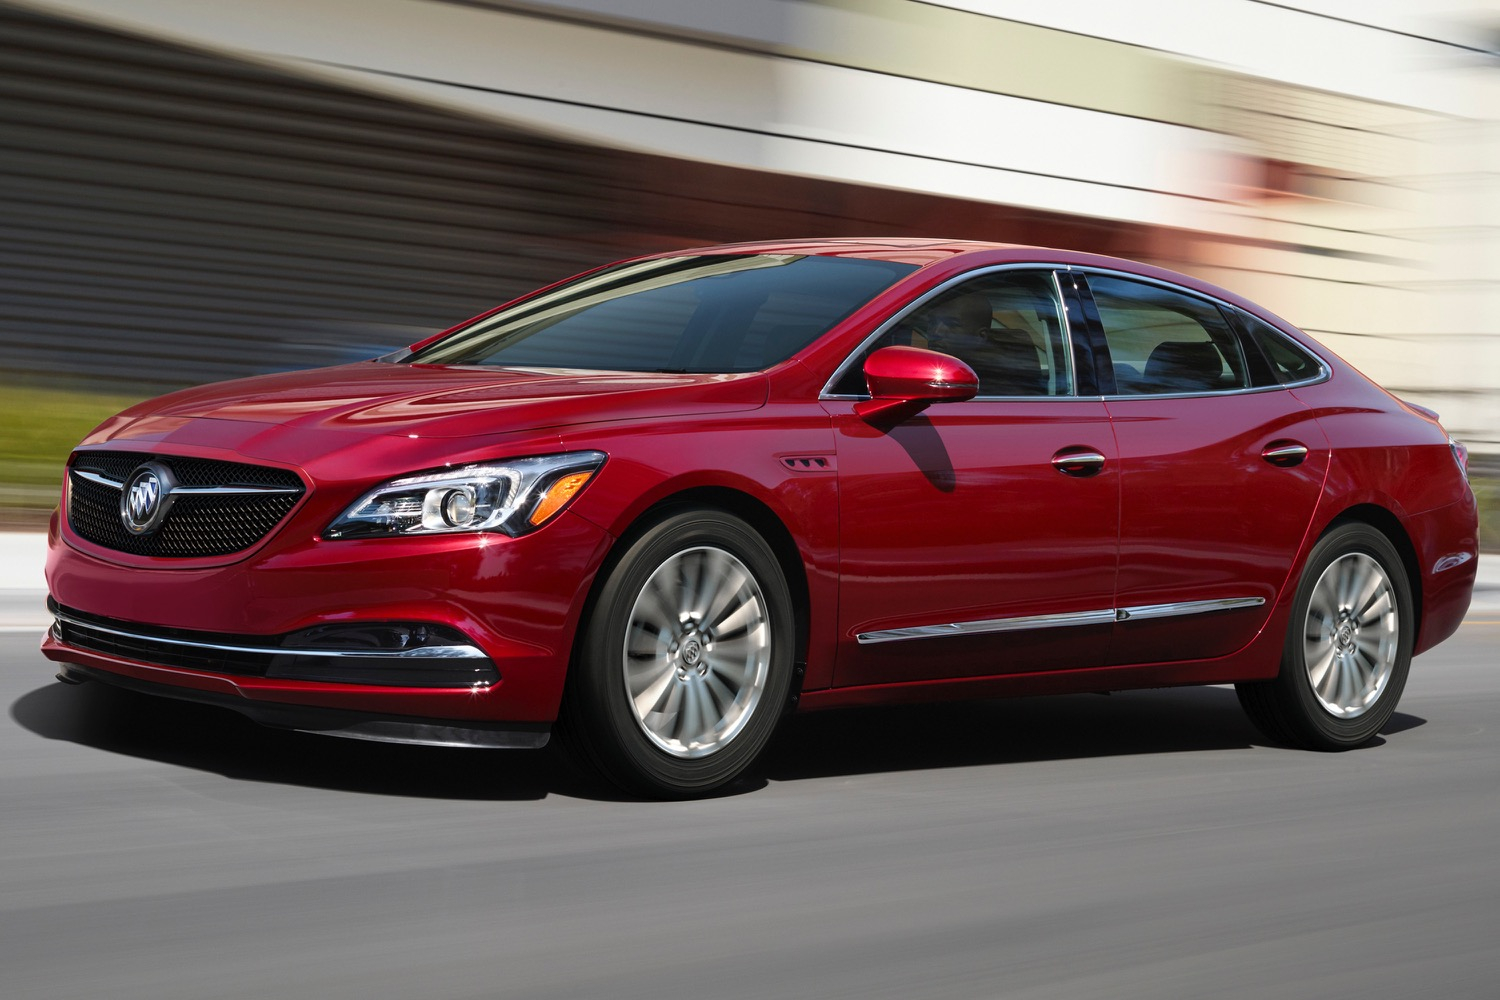 Buick Lacrosse Discount Totals $9,000 February 2020 | Gm 2022 Buick Lacrosse Cost, Awd, Build And Price